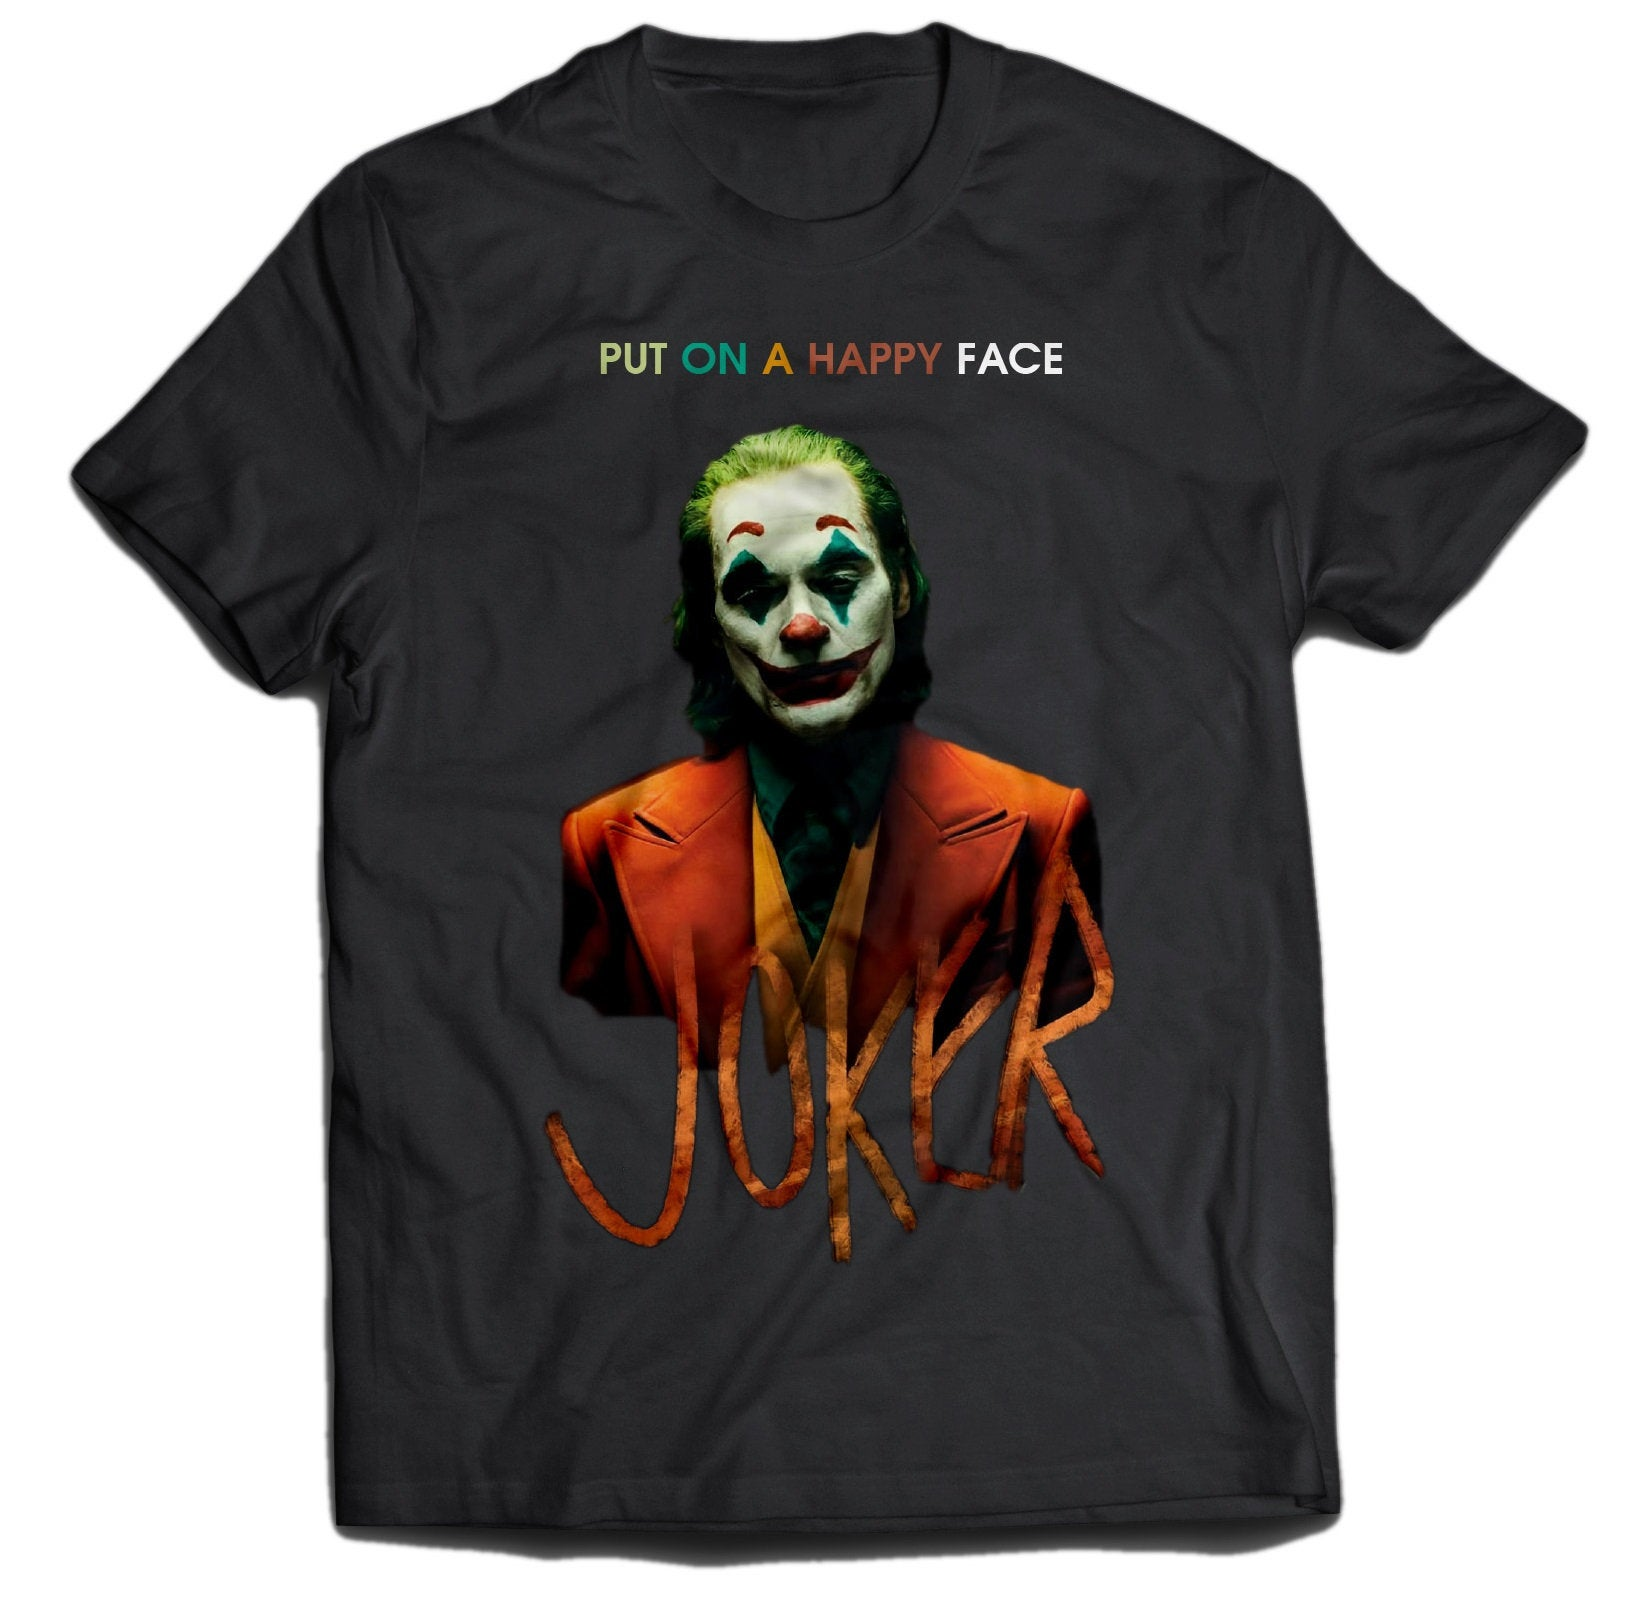 The joker T shirt Movie joaquin phoenix Tshirt Harley Quinn DC Comics The Dark Knight, Justice League Superheroes Unisex Adult kids J01